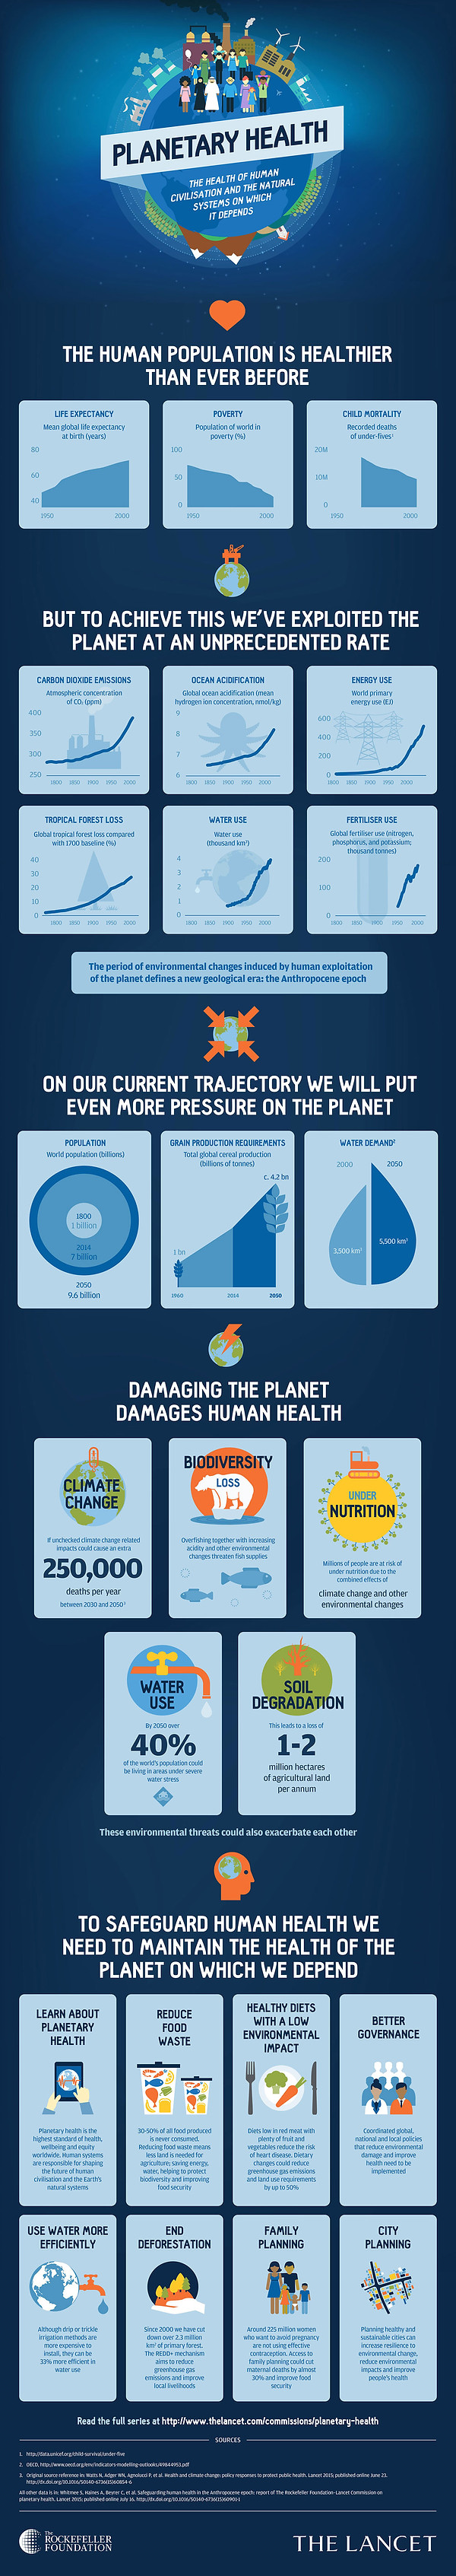 planetary-health-infographic.jpg